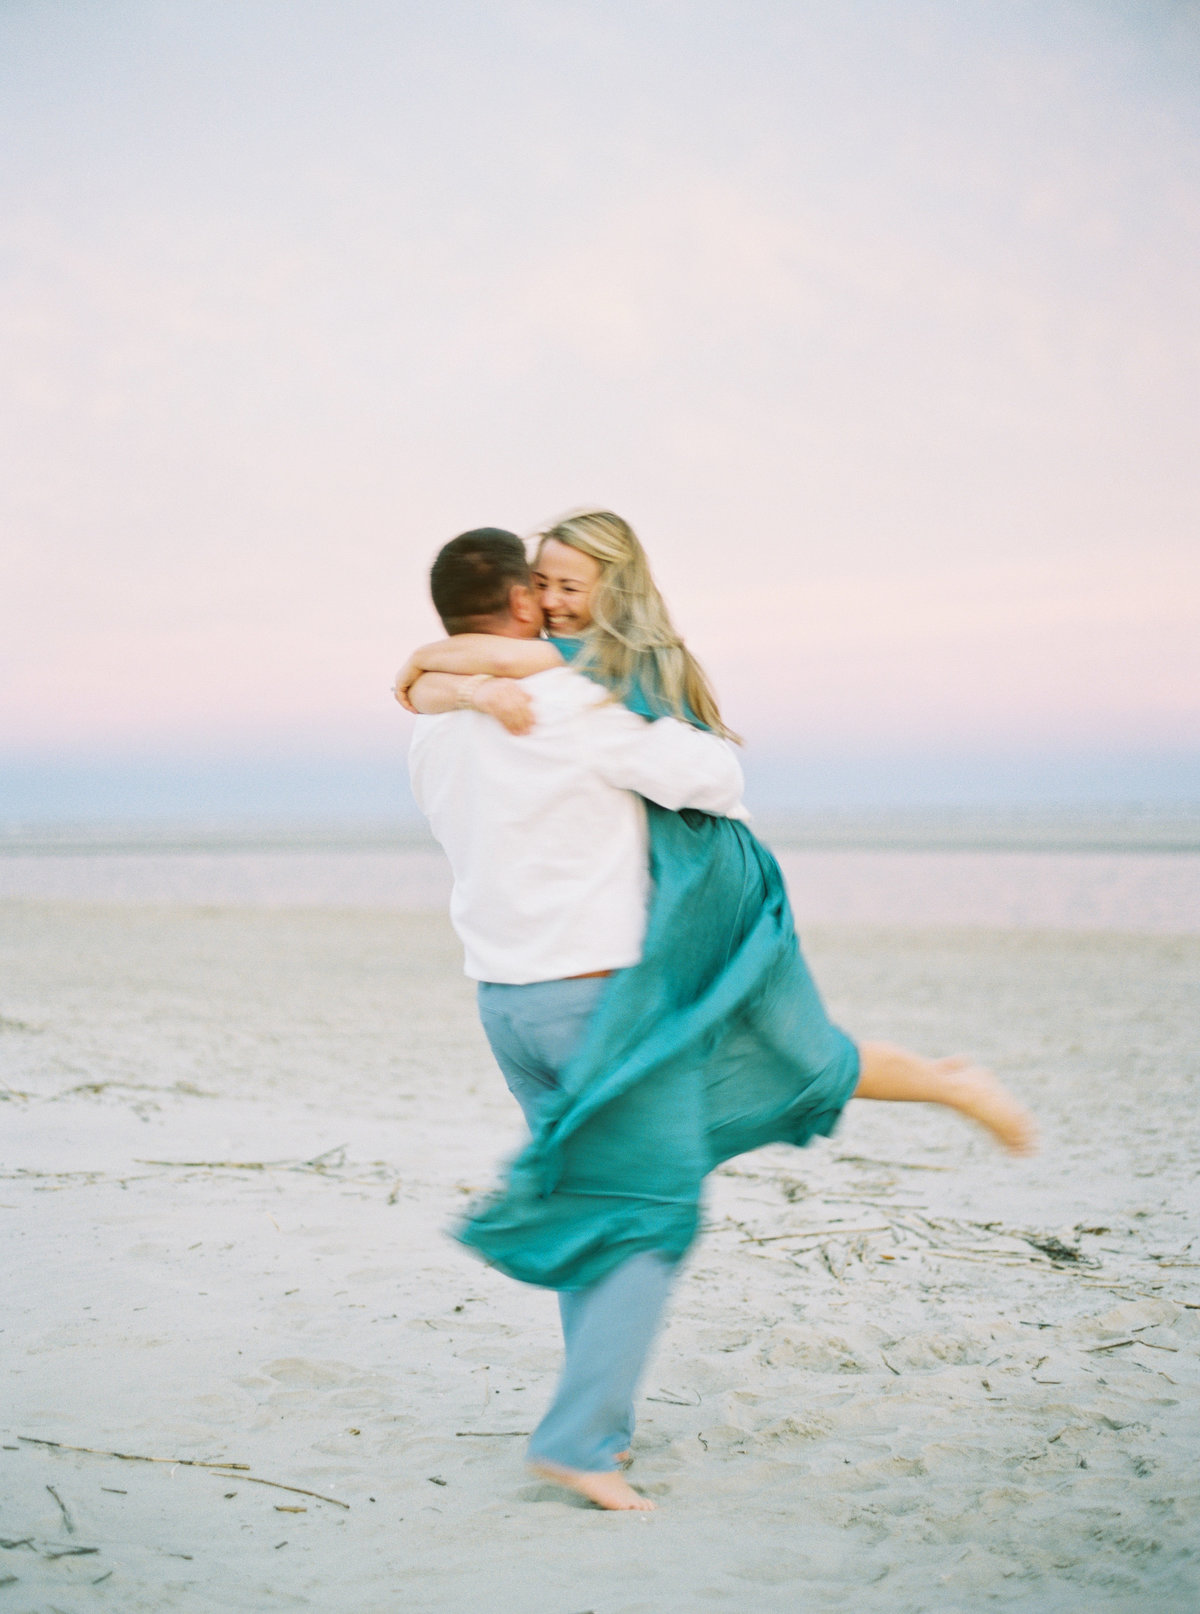 Engagement photo with lots of emotion as couple spins on the beach.